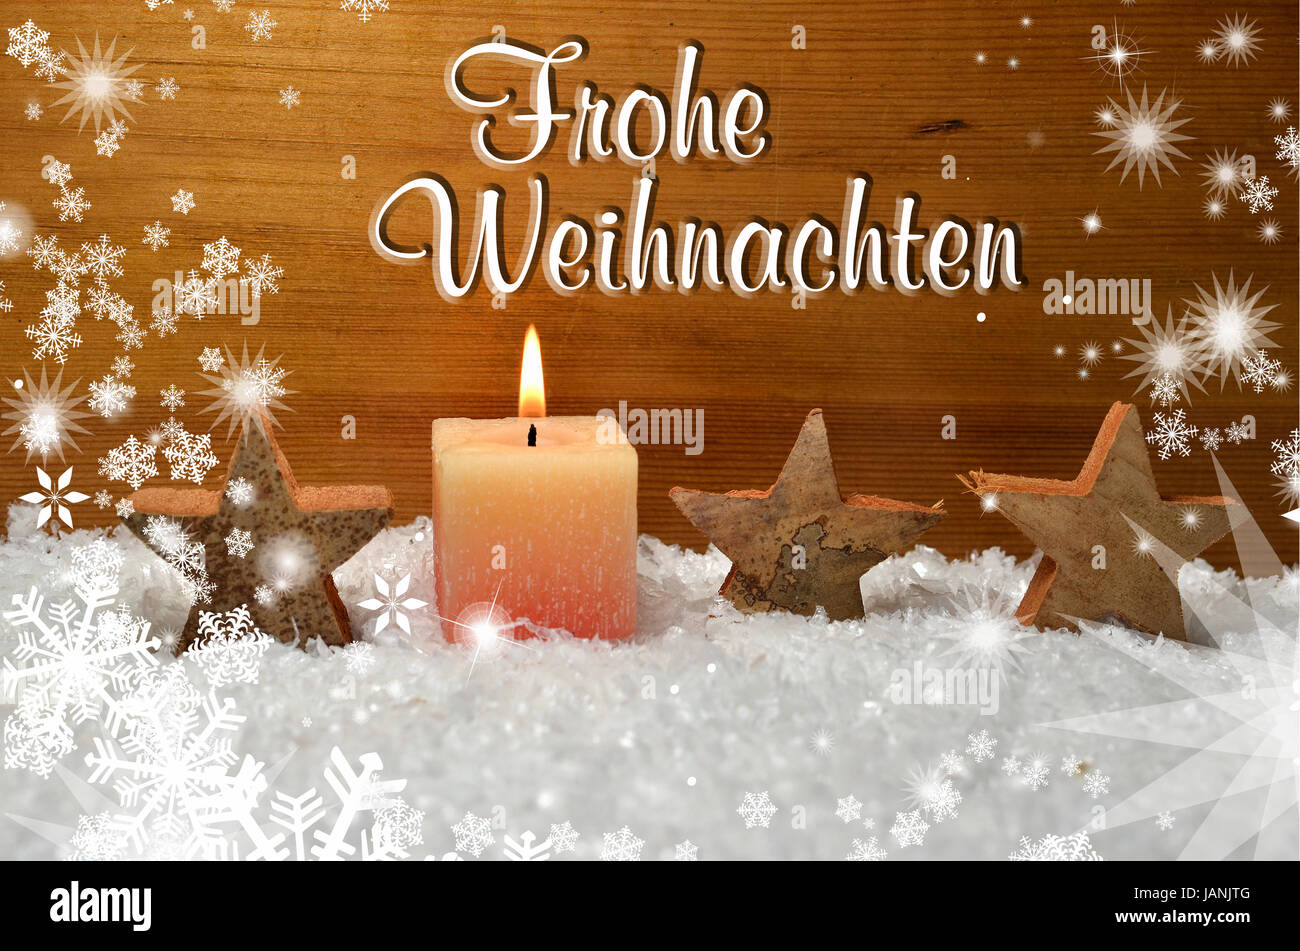 Frohe weihnachten dekoration advent stock photo royalty for Dekoration weihnachten